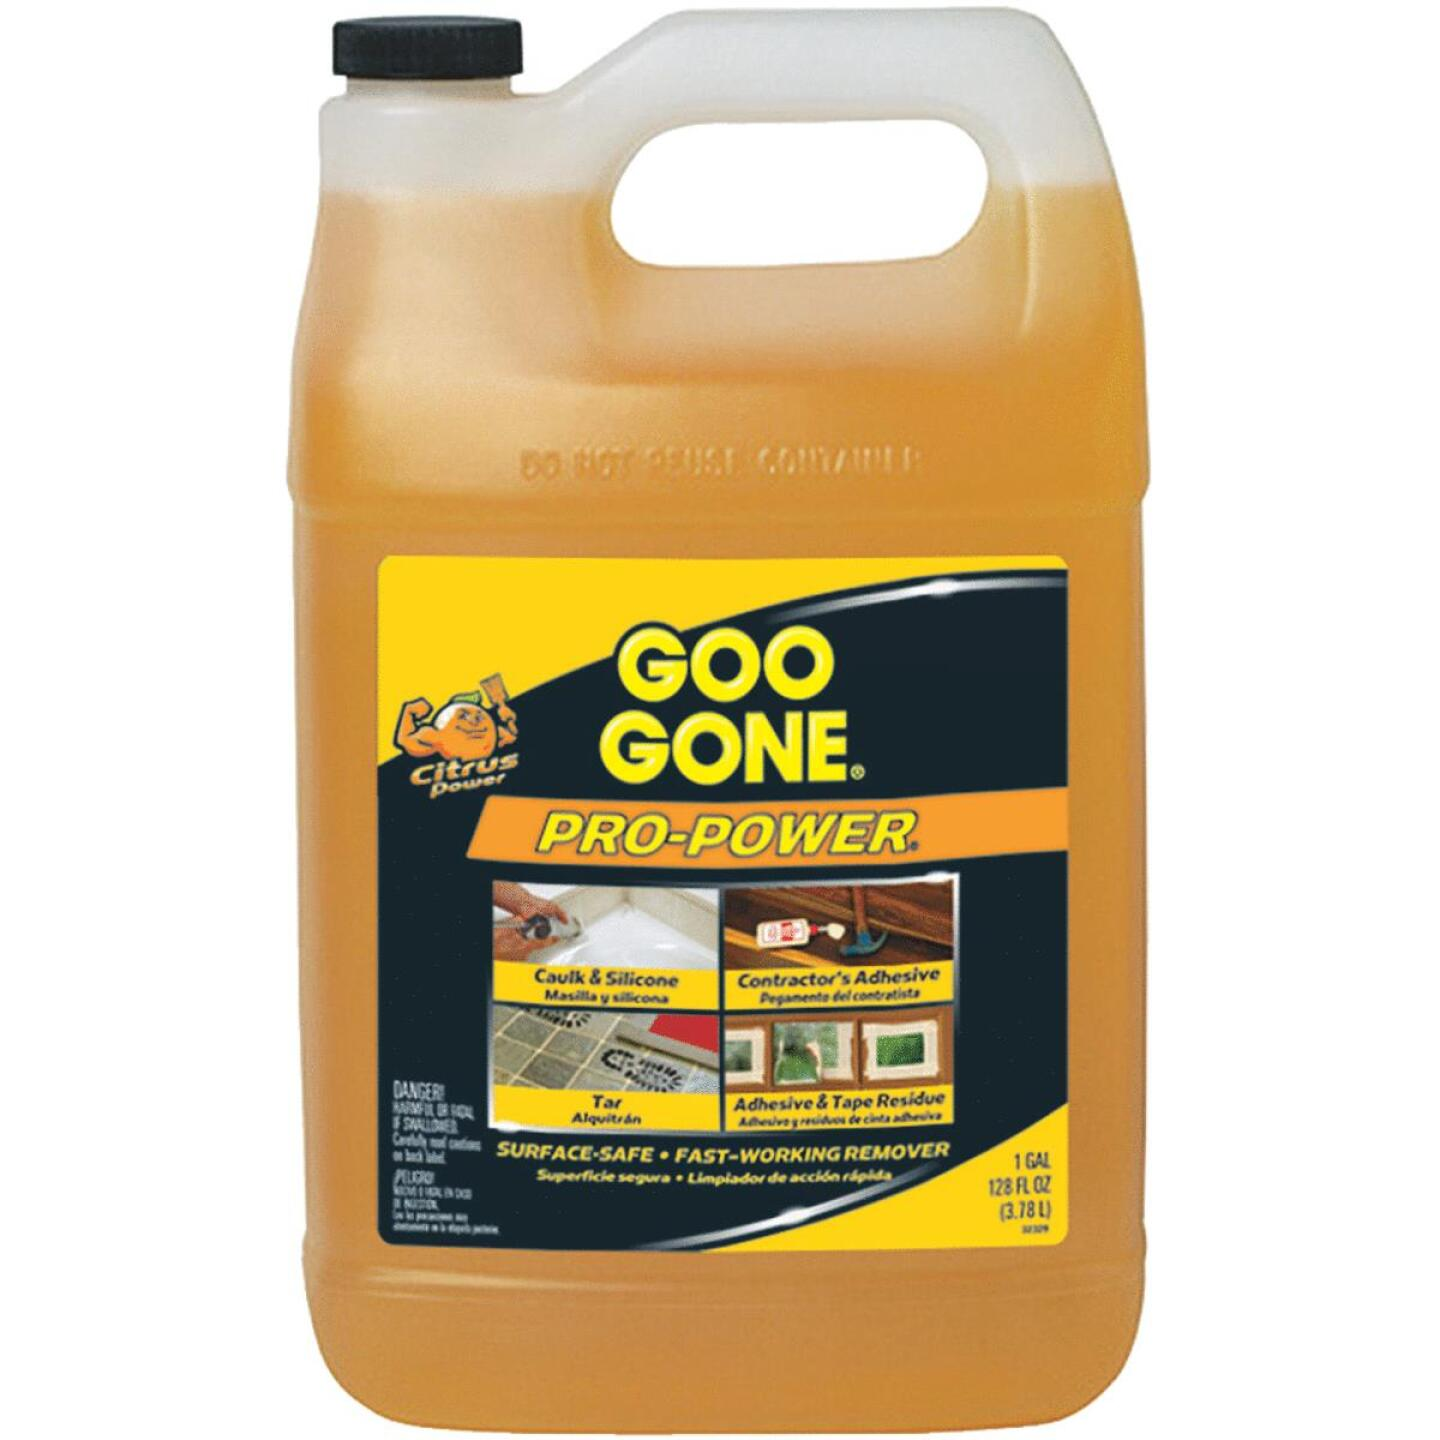 Goo Gone 1 Gal. Pro-Power Adhesive Remover Image 178